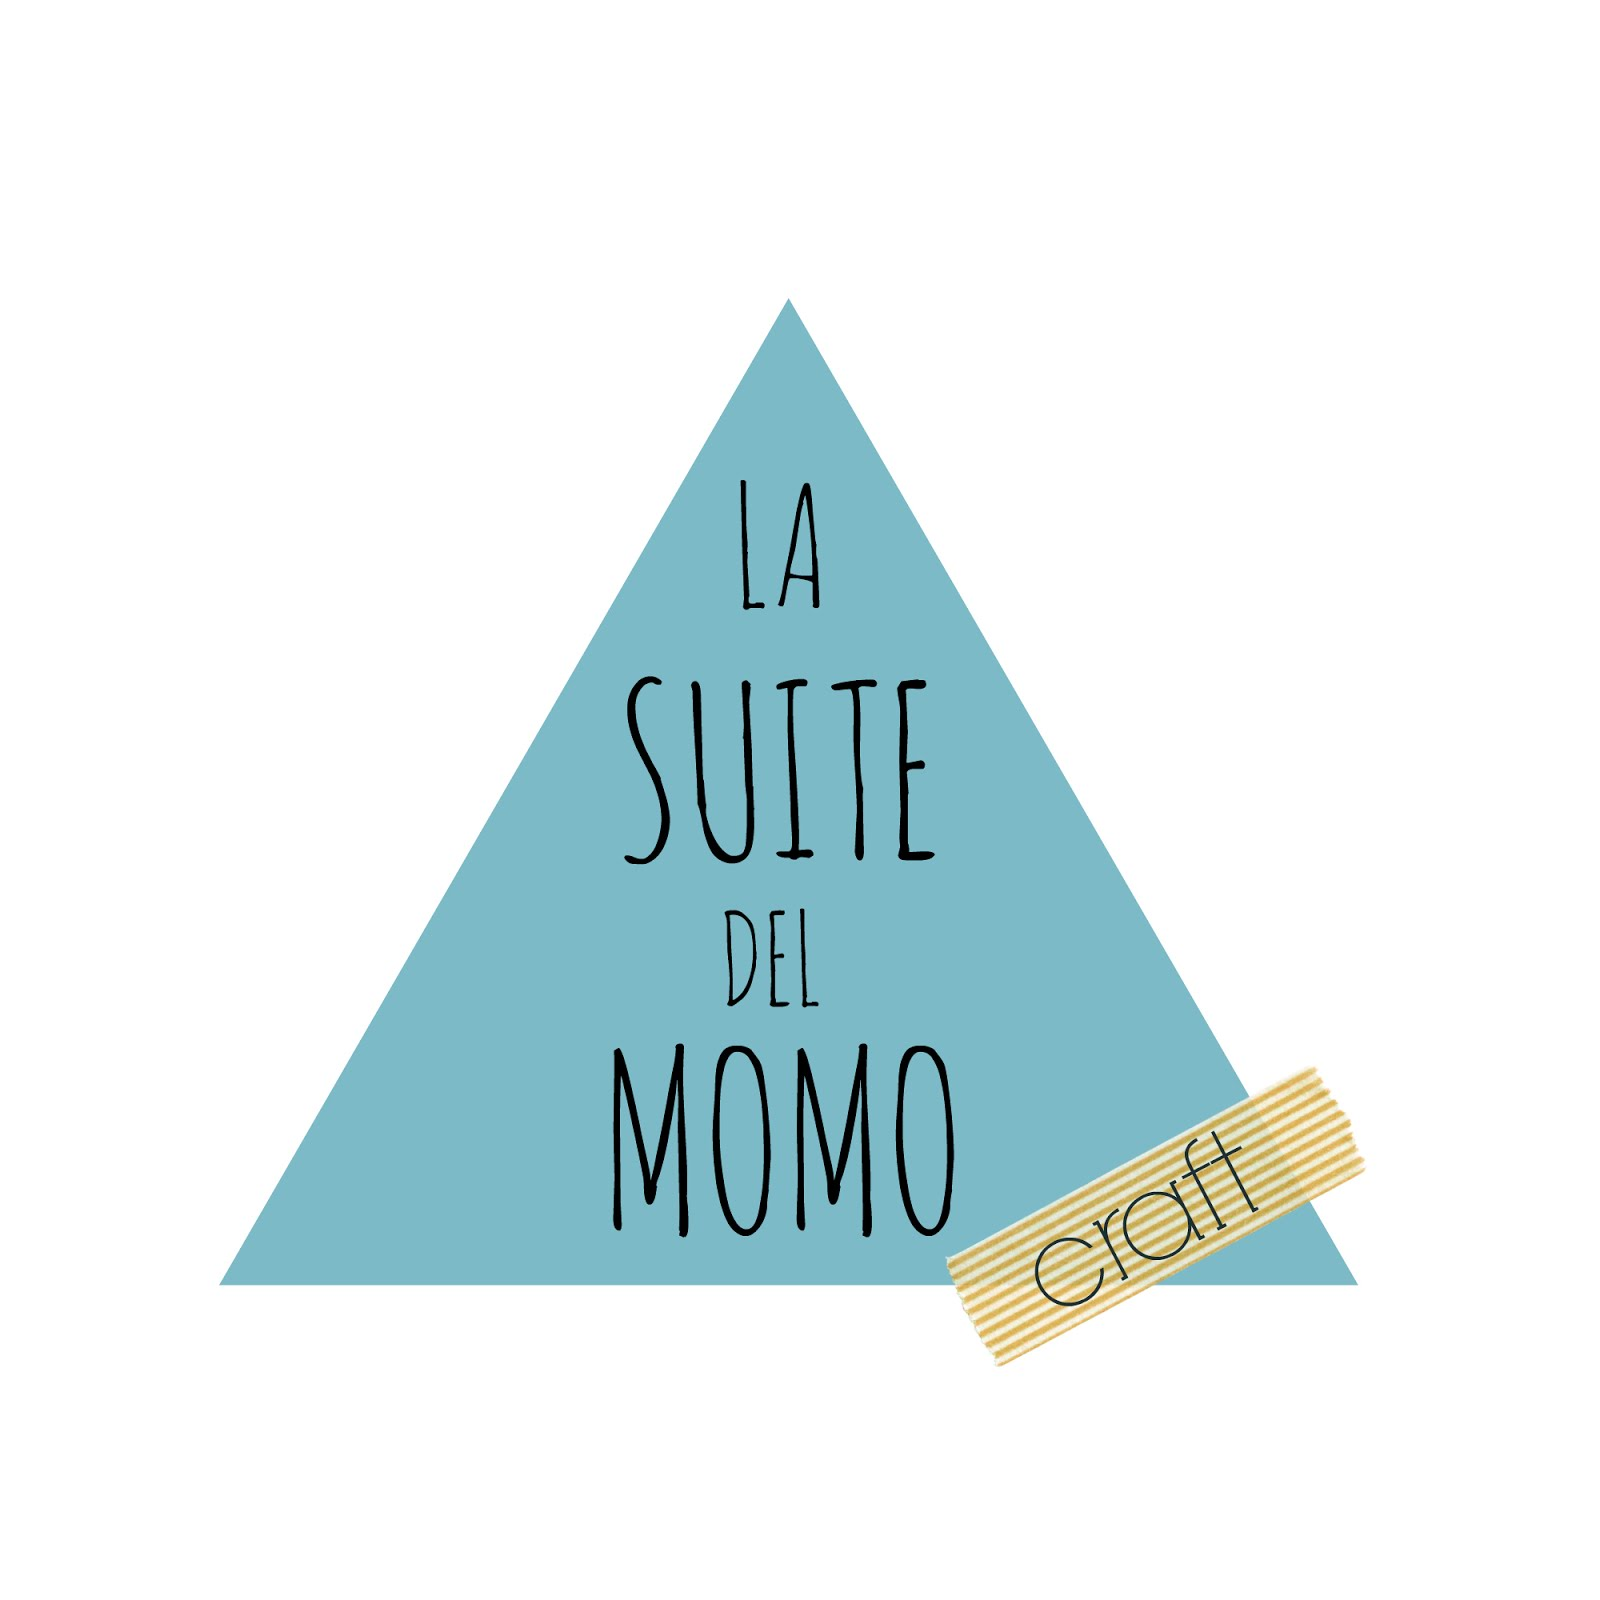 la suite del momo craft